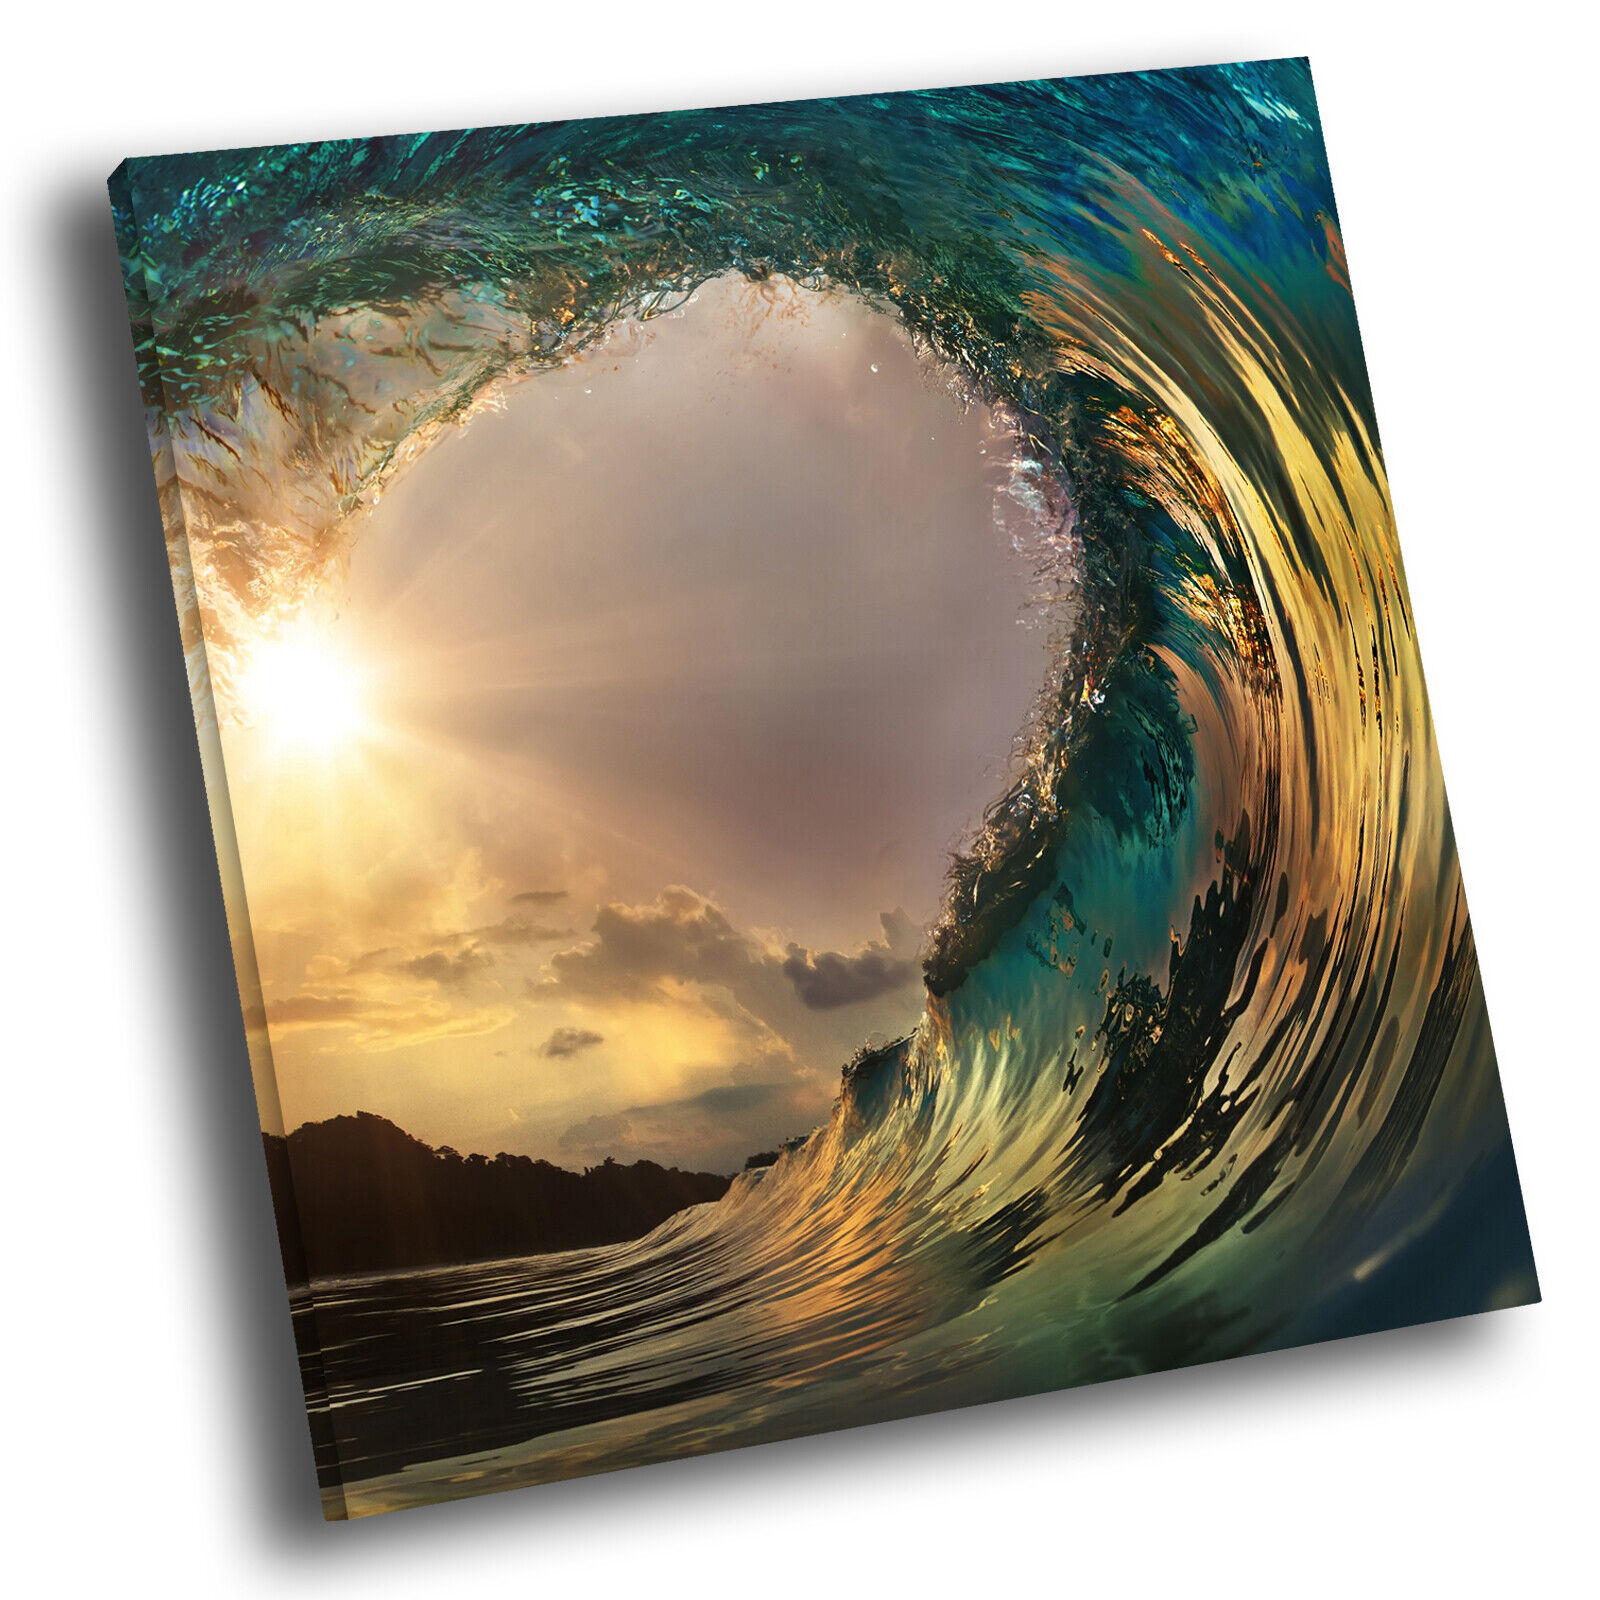 Blau Gelb grau Wave Nature Square Scenic Canvas Wall Art Large Picture Print